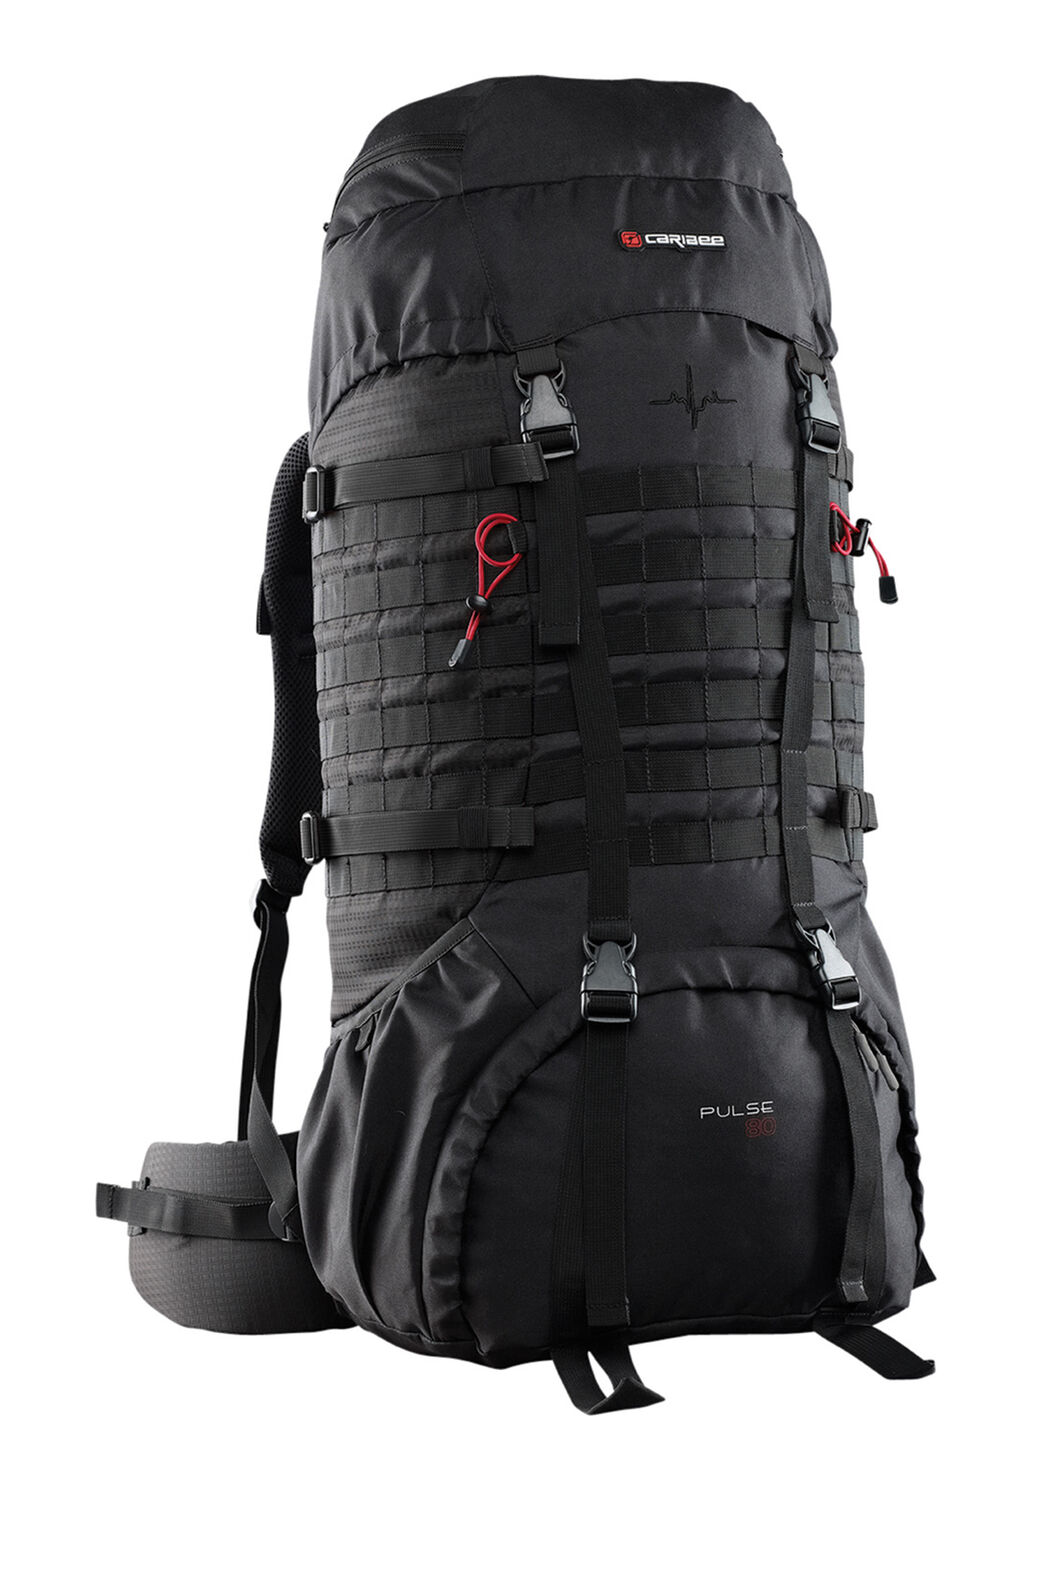 Caribee Pulse Trekking Pack 80L, None, hi-res